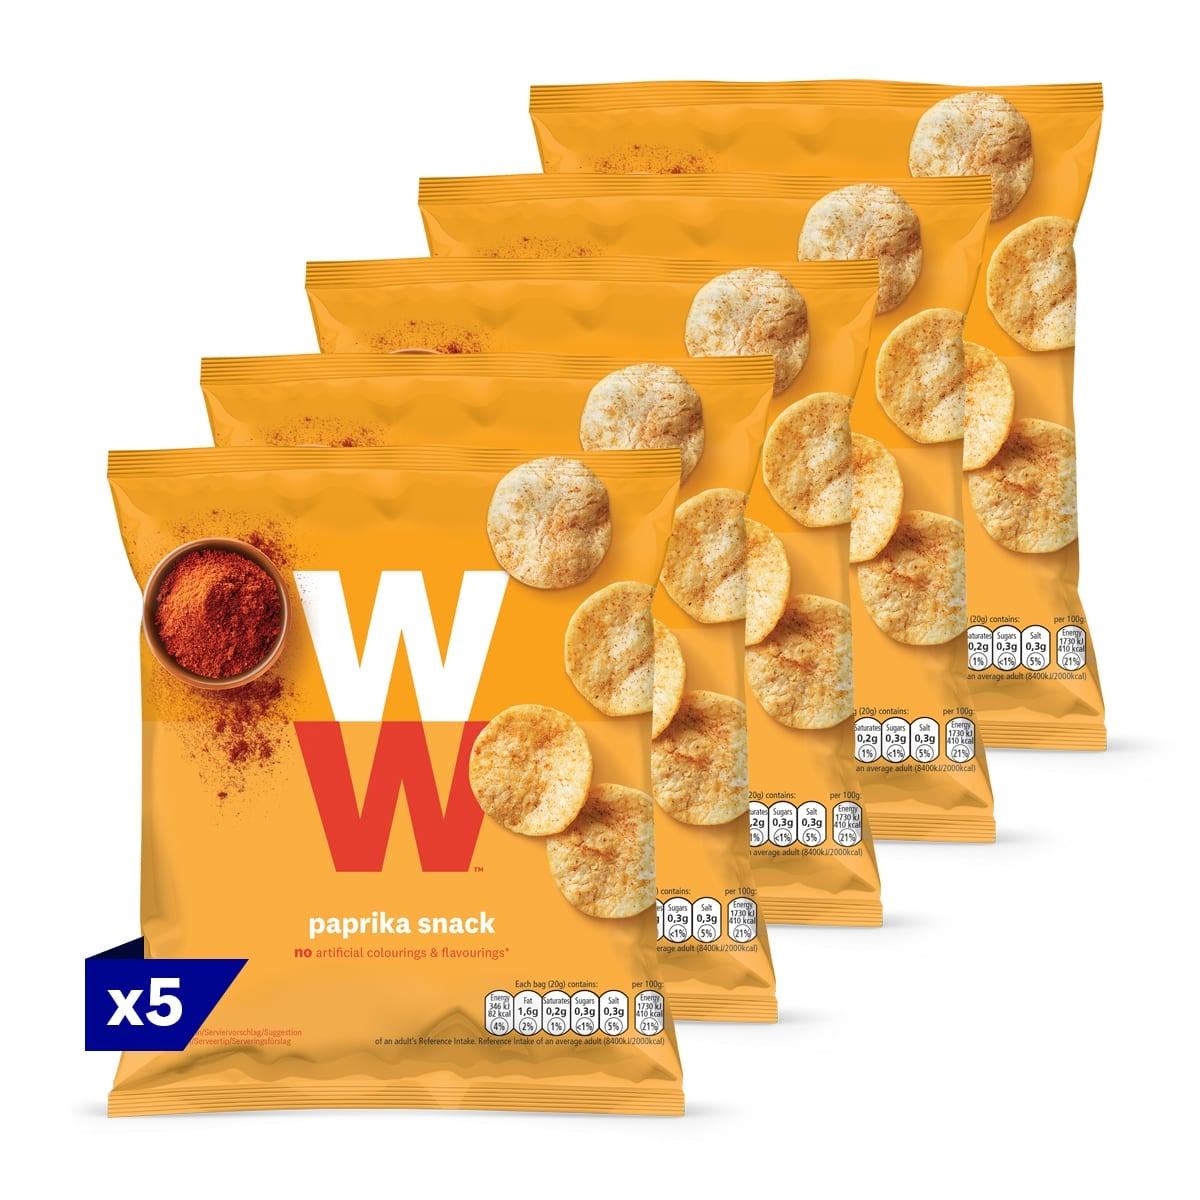 5 pack, WW Crunchy potato based snack, paprika flavoured, baked not fried, only 2 SmartPoints values per bag, light and tasty, suitable for vegans